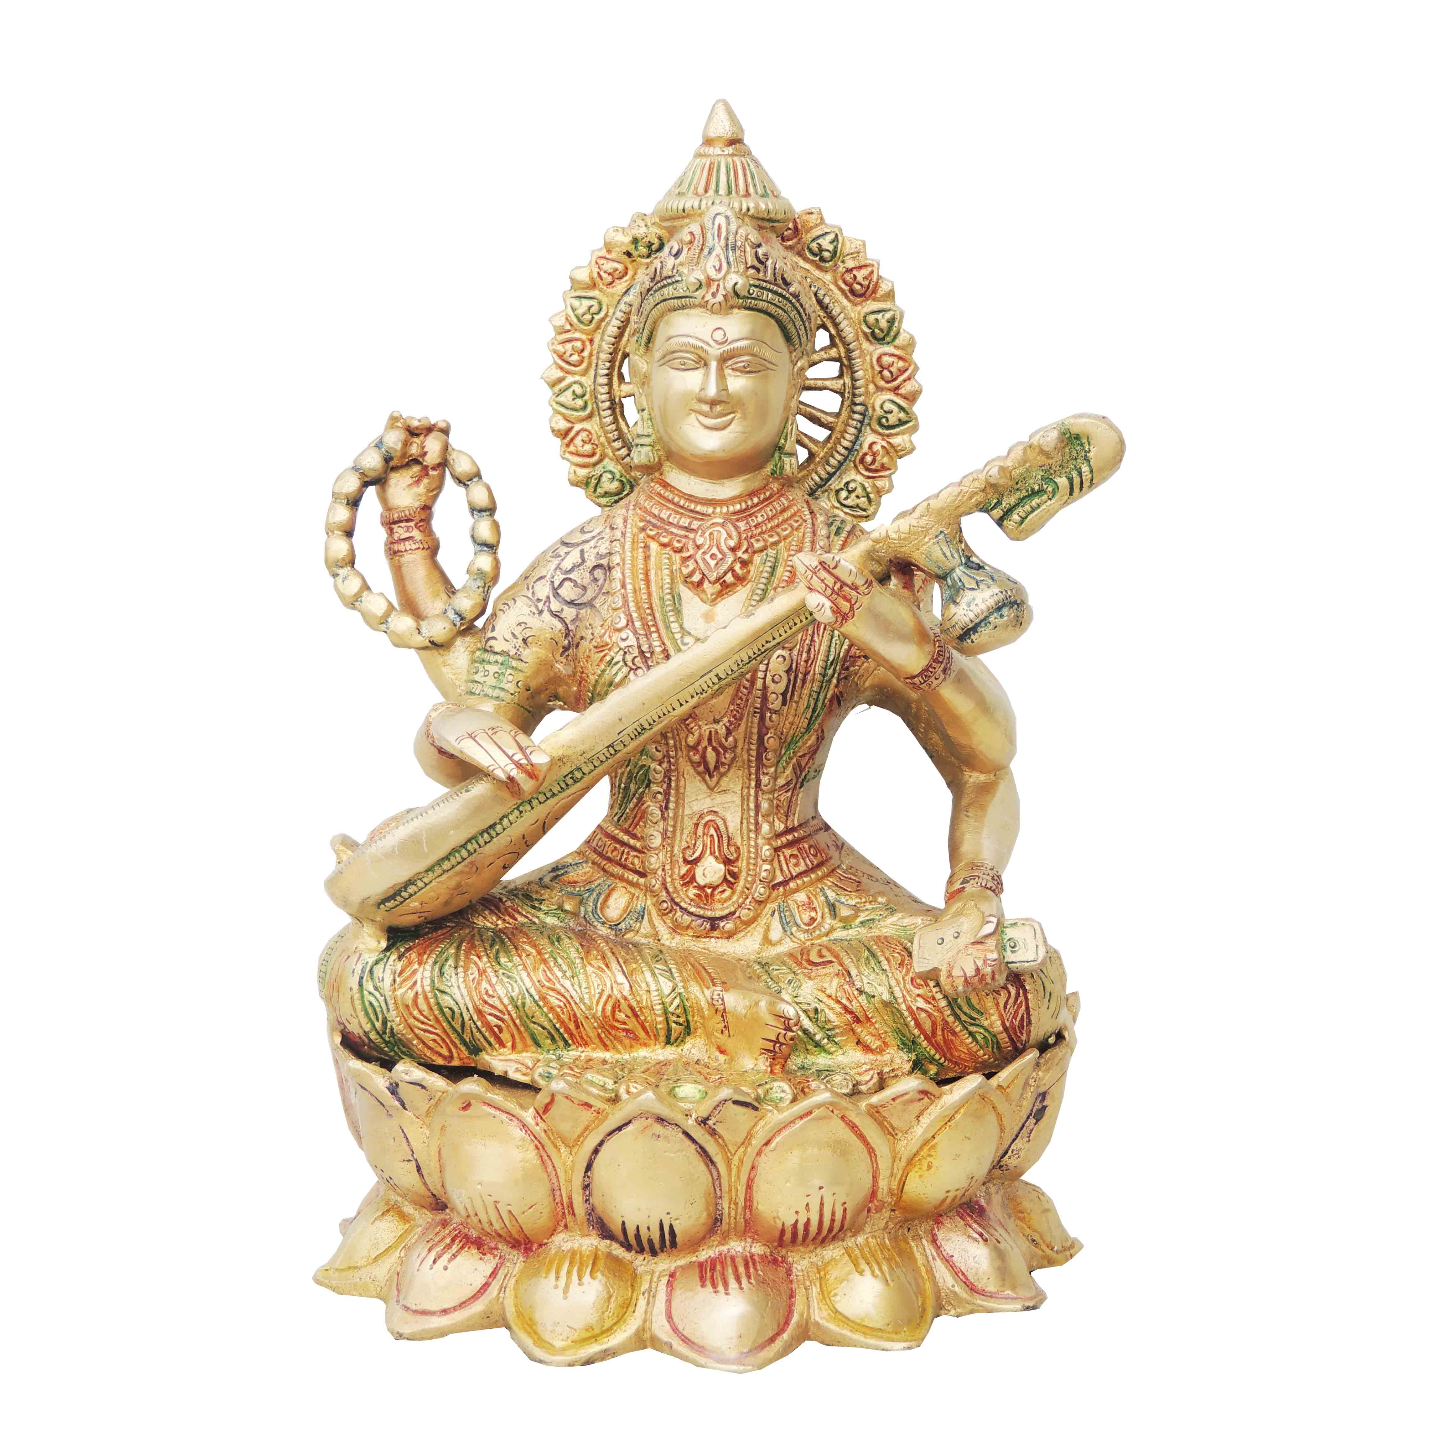 Brass Saraswati Idol Murti Multicolour lacquer finish - 7.8*6.5*11 inch  (BS034)